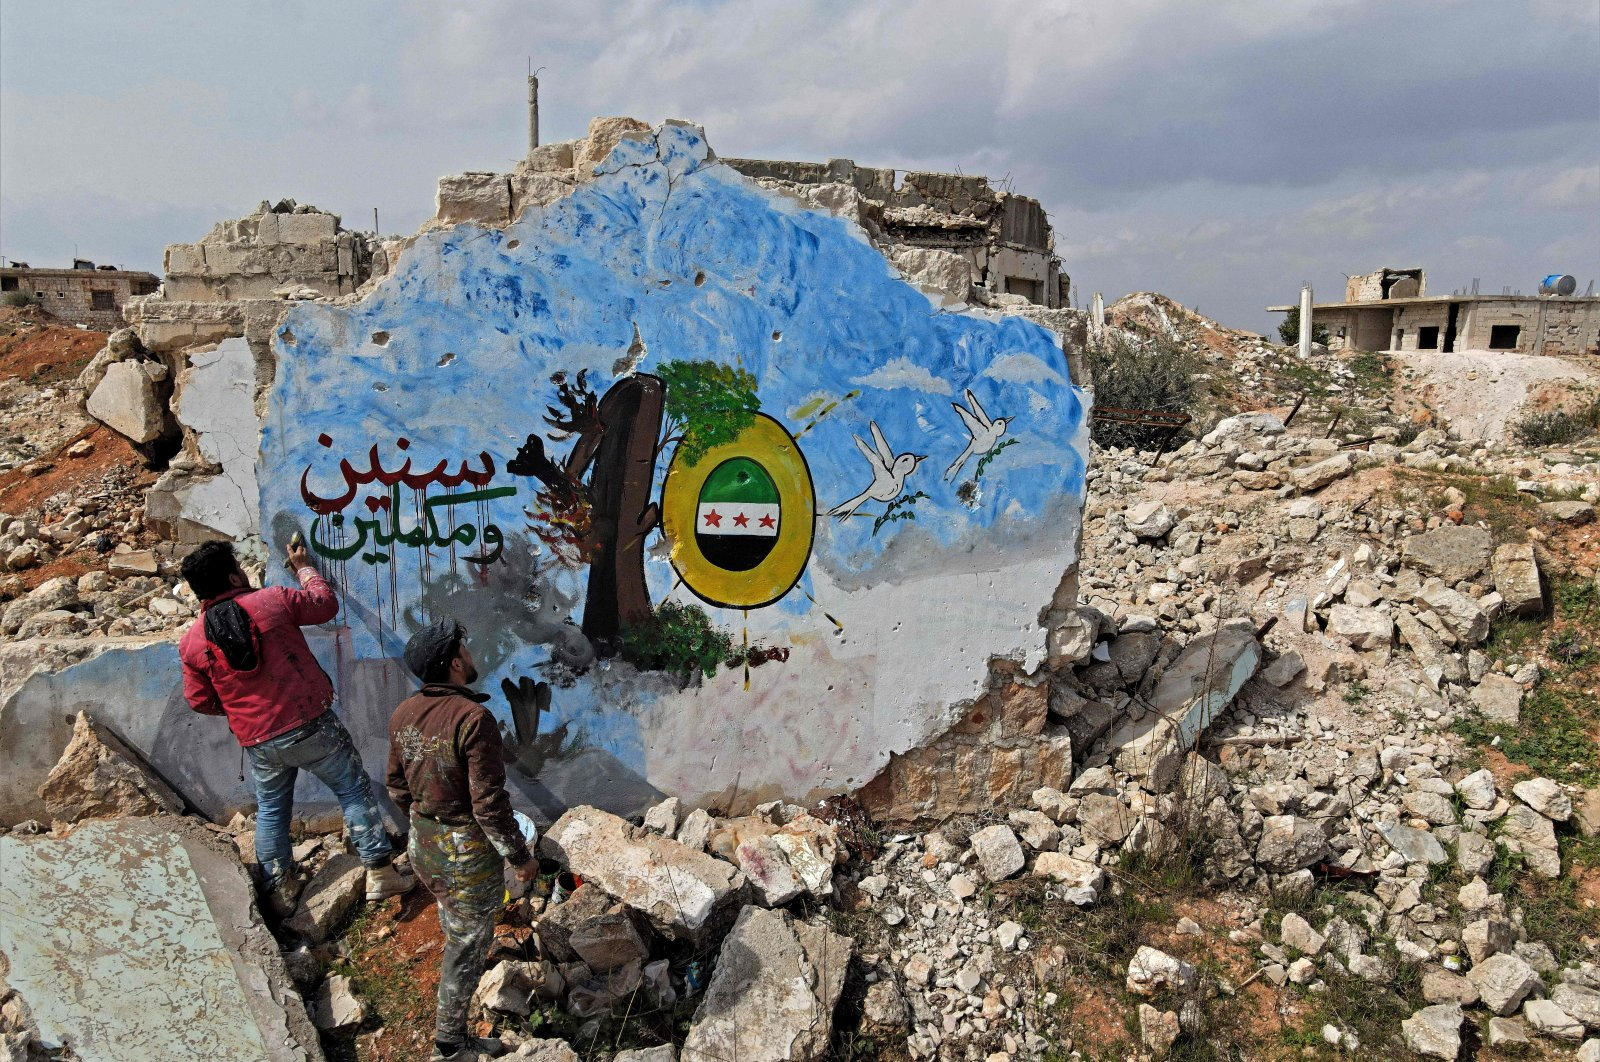 Syrians paint a mural on the remains of a building to mark 10 years of the Syrian war, in the opposition-held town of Binnish in Syria's northwestern province of Idlib, March 11, 2021. (AFP)